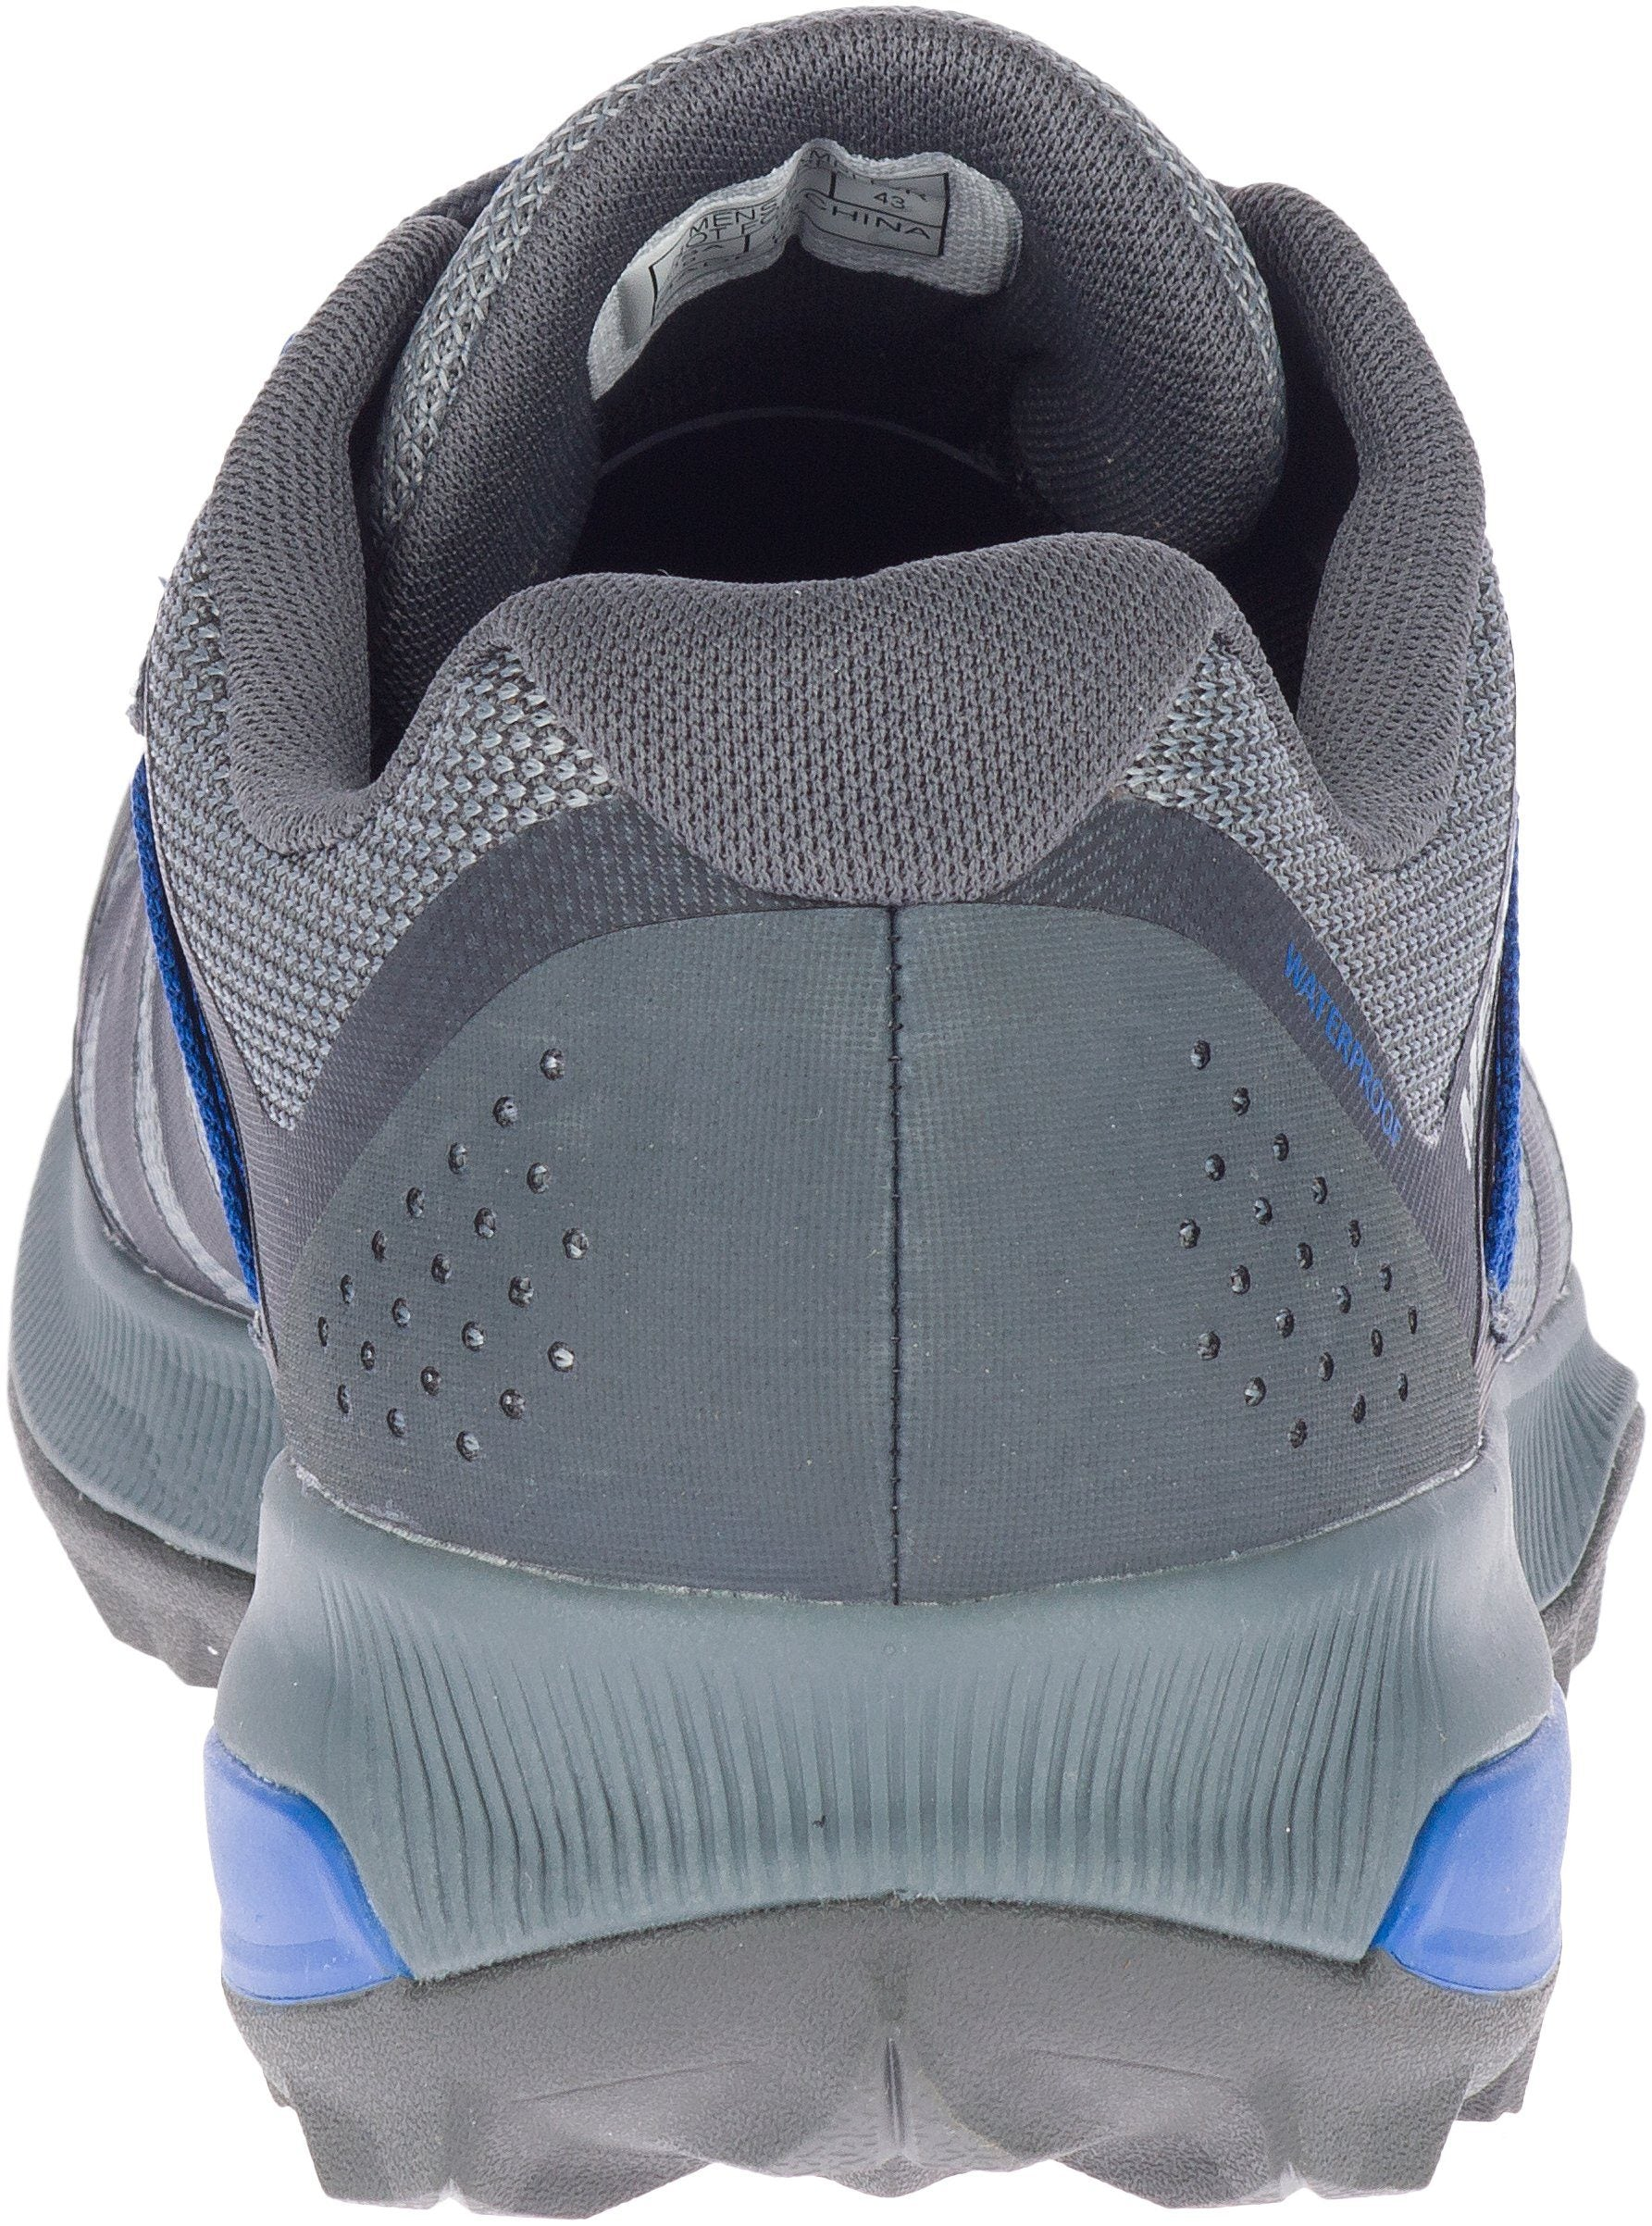 Merrell Men's Zion FST WP - Grey/Blue SP-Footwear-Mens Merrell